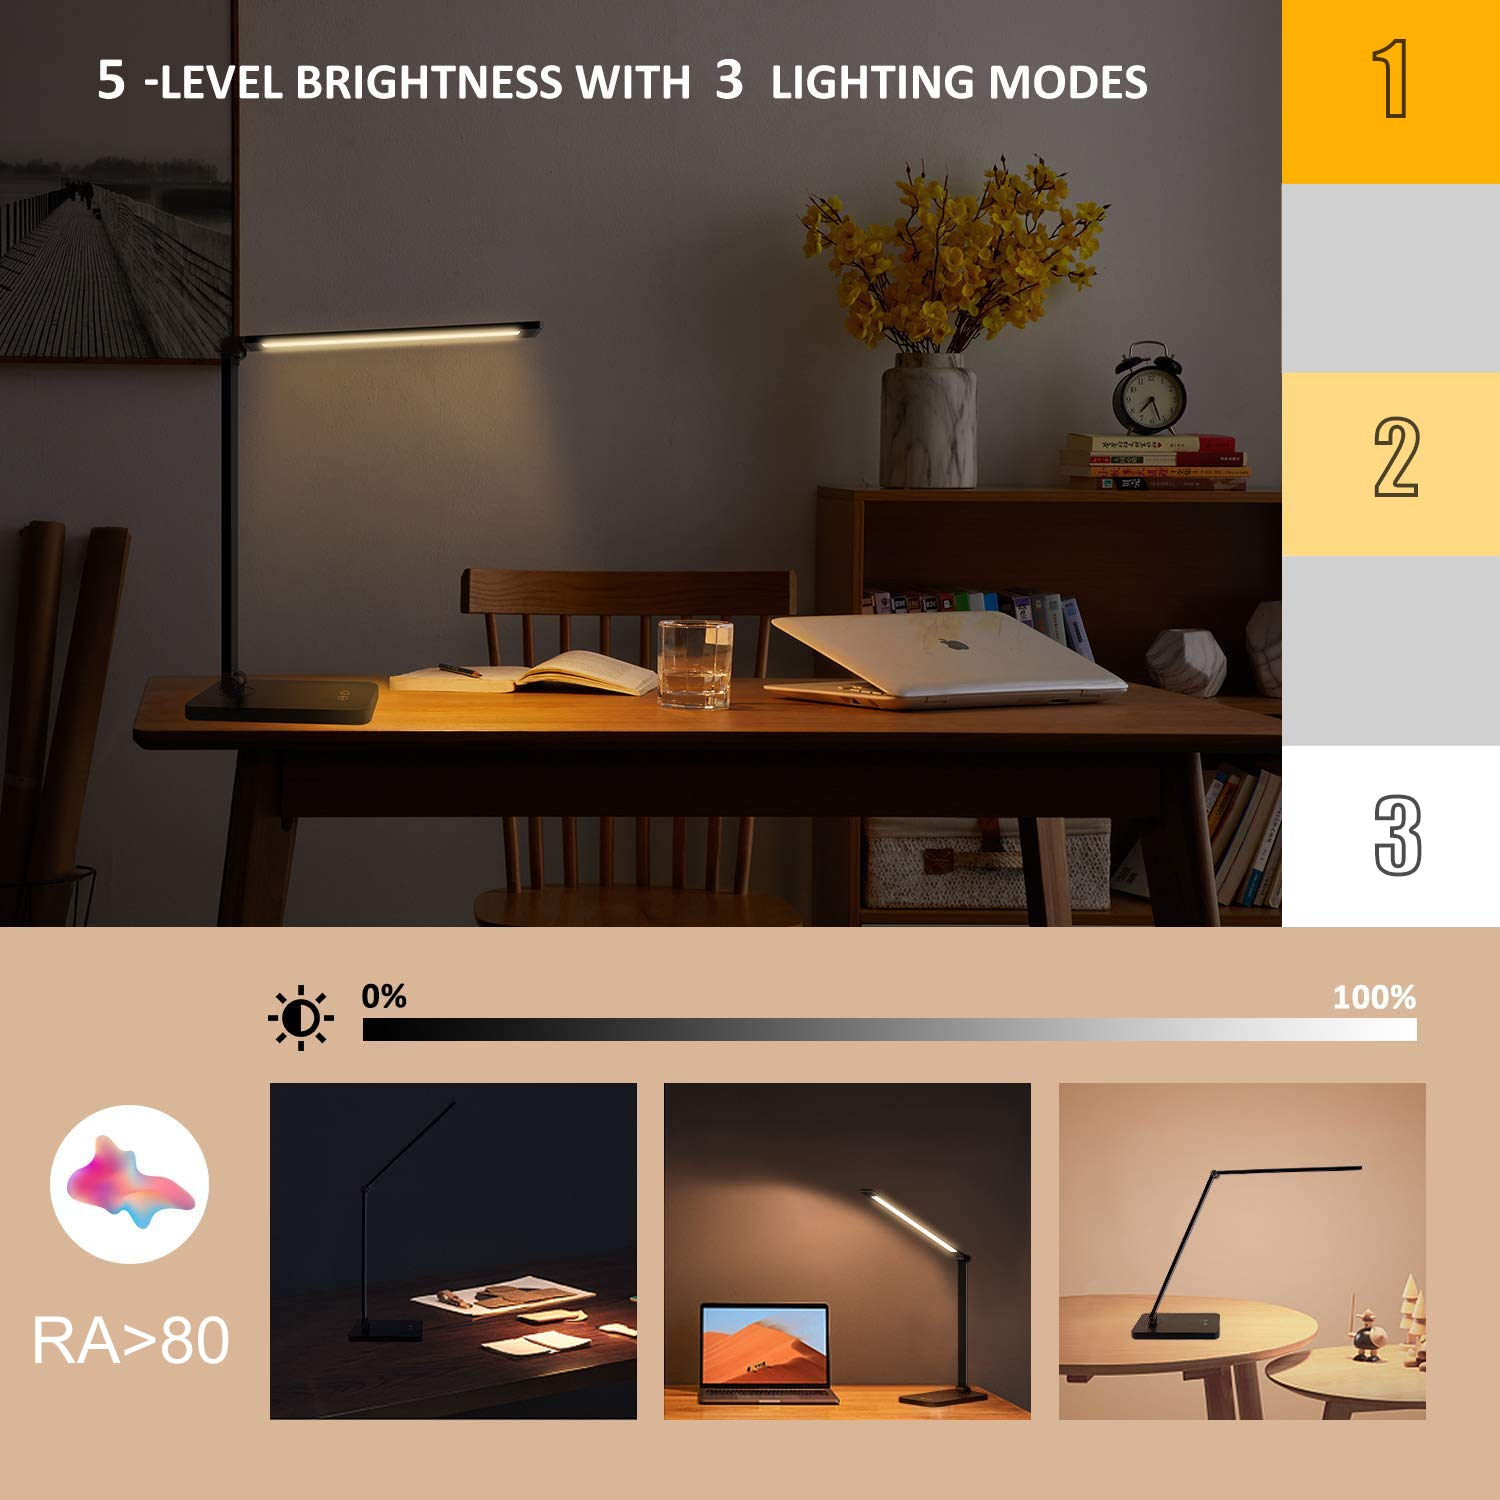 Gluckluz Desk Lamp LED Table Light Foldable Touch Control Reading Lamp with Wireless USB Charging Port 3 Lighting Modes 5 Brightness Levels Built-in Clock Calendar Thermometer for Study Office (Black)